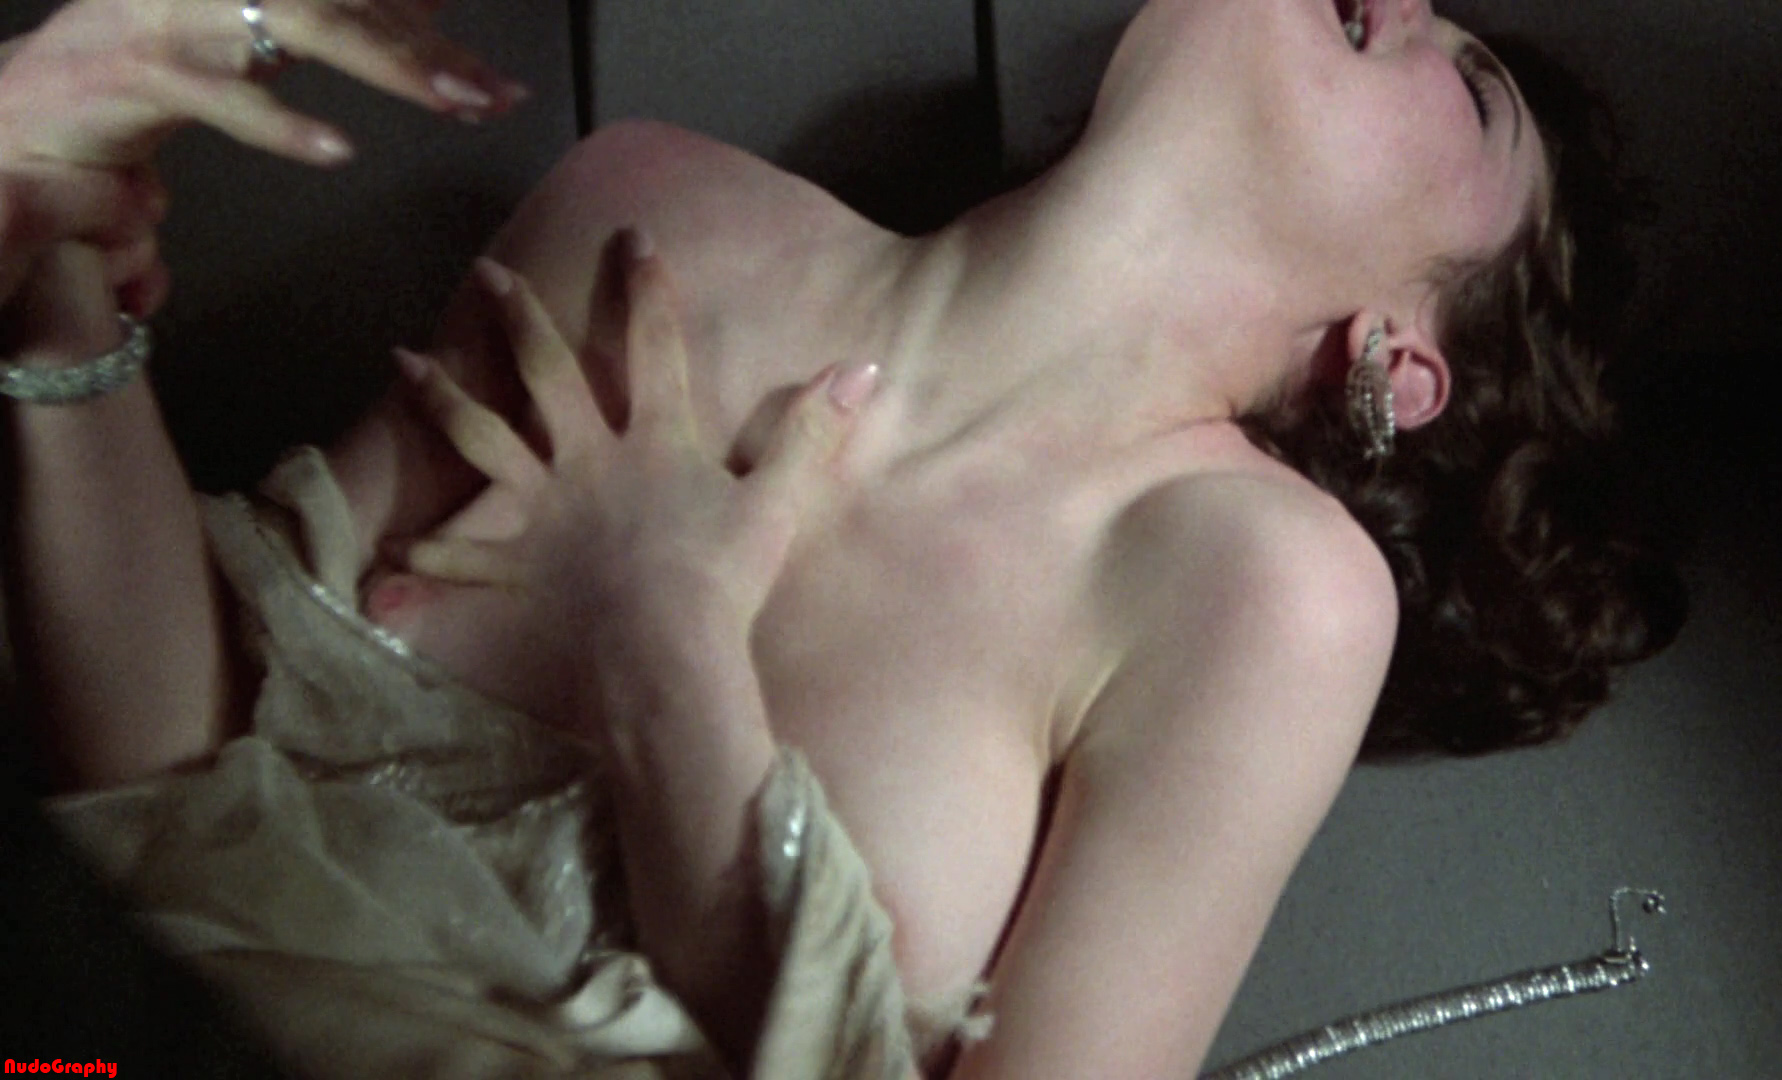 Rather valuable Pictures of elizabeth mcgovern nude